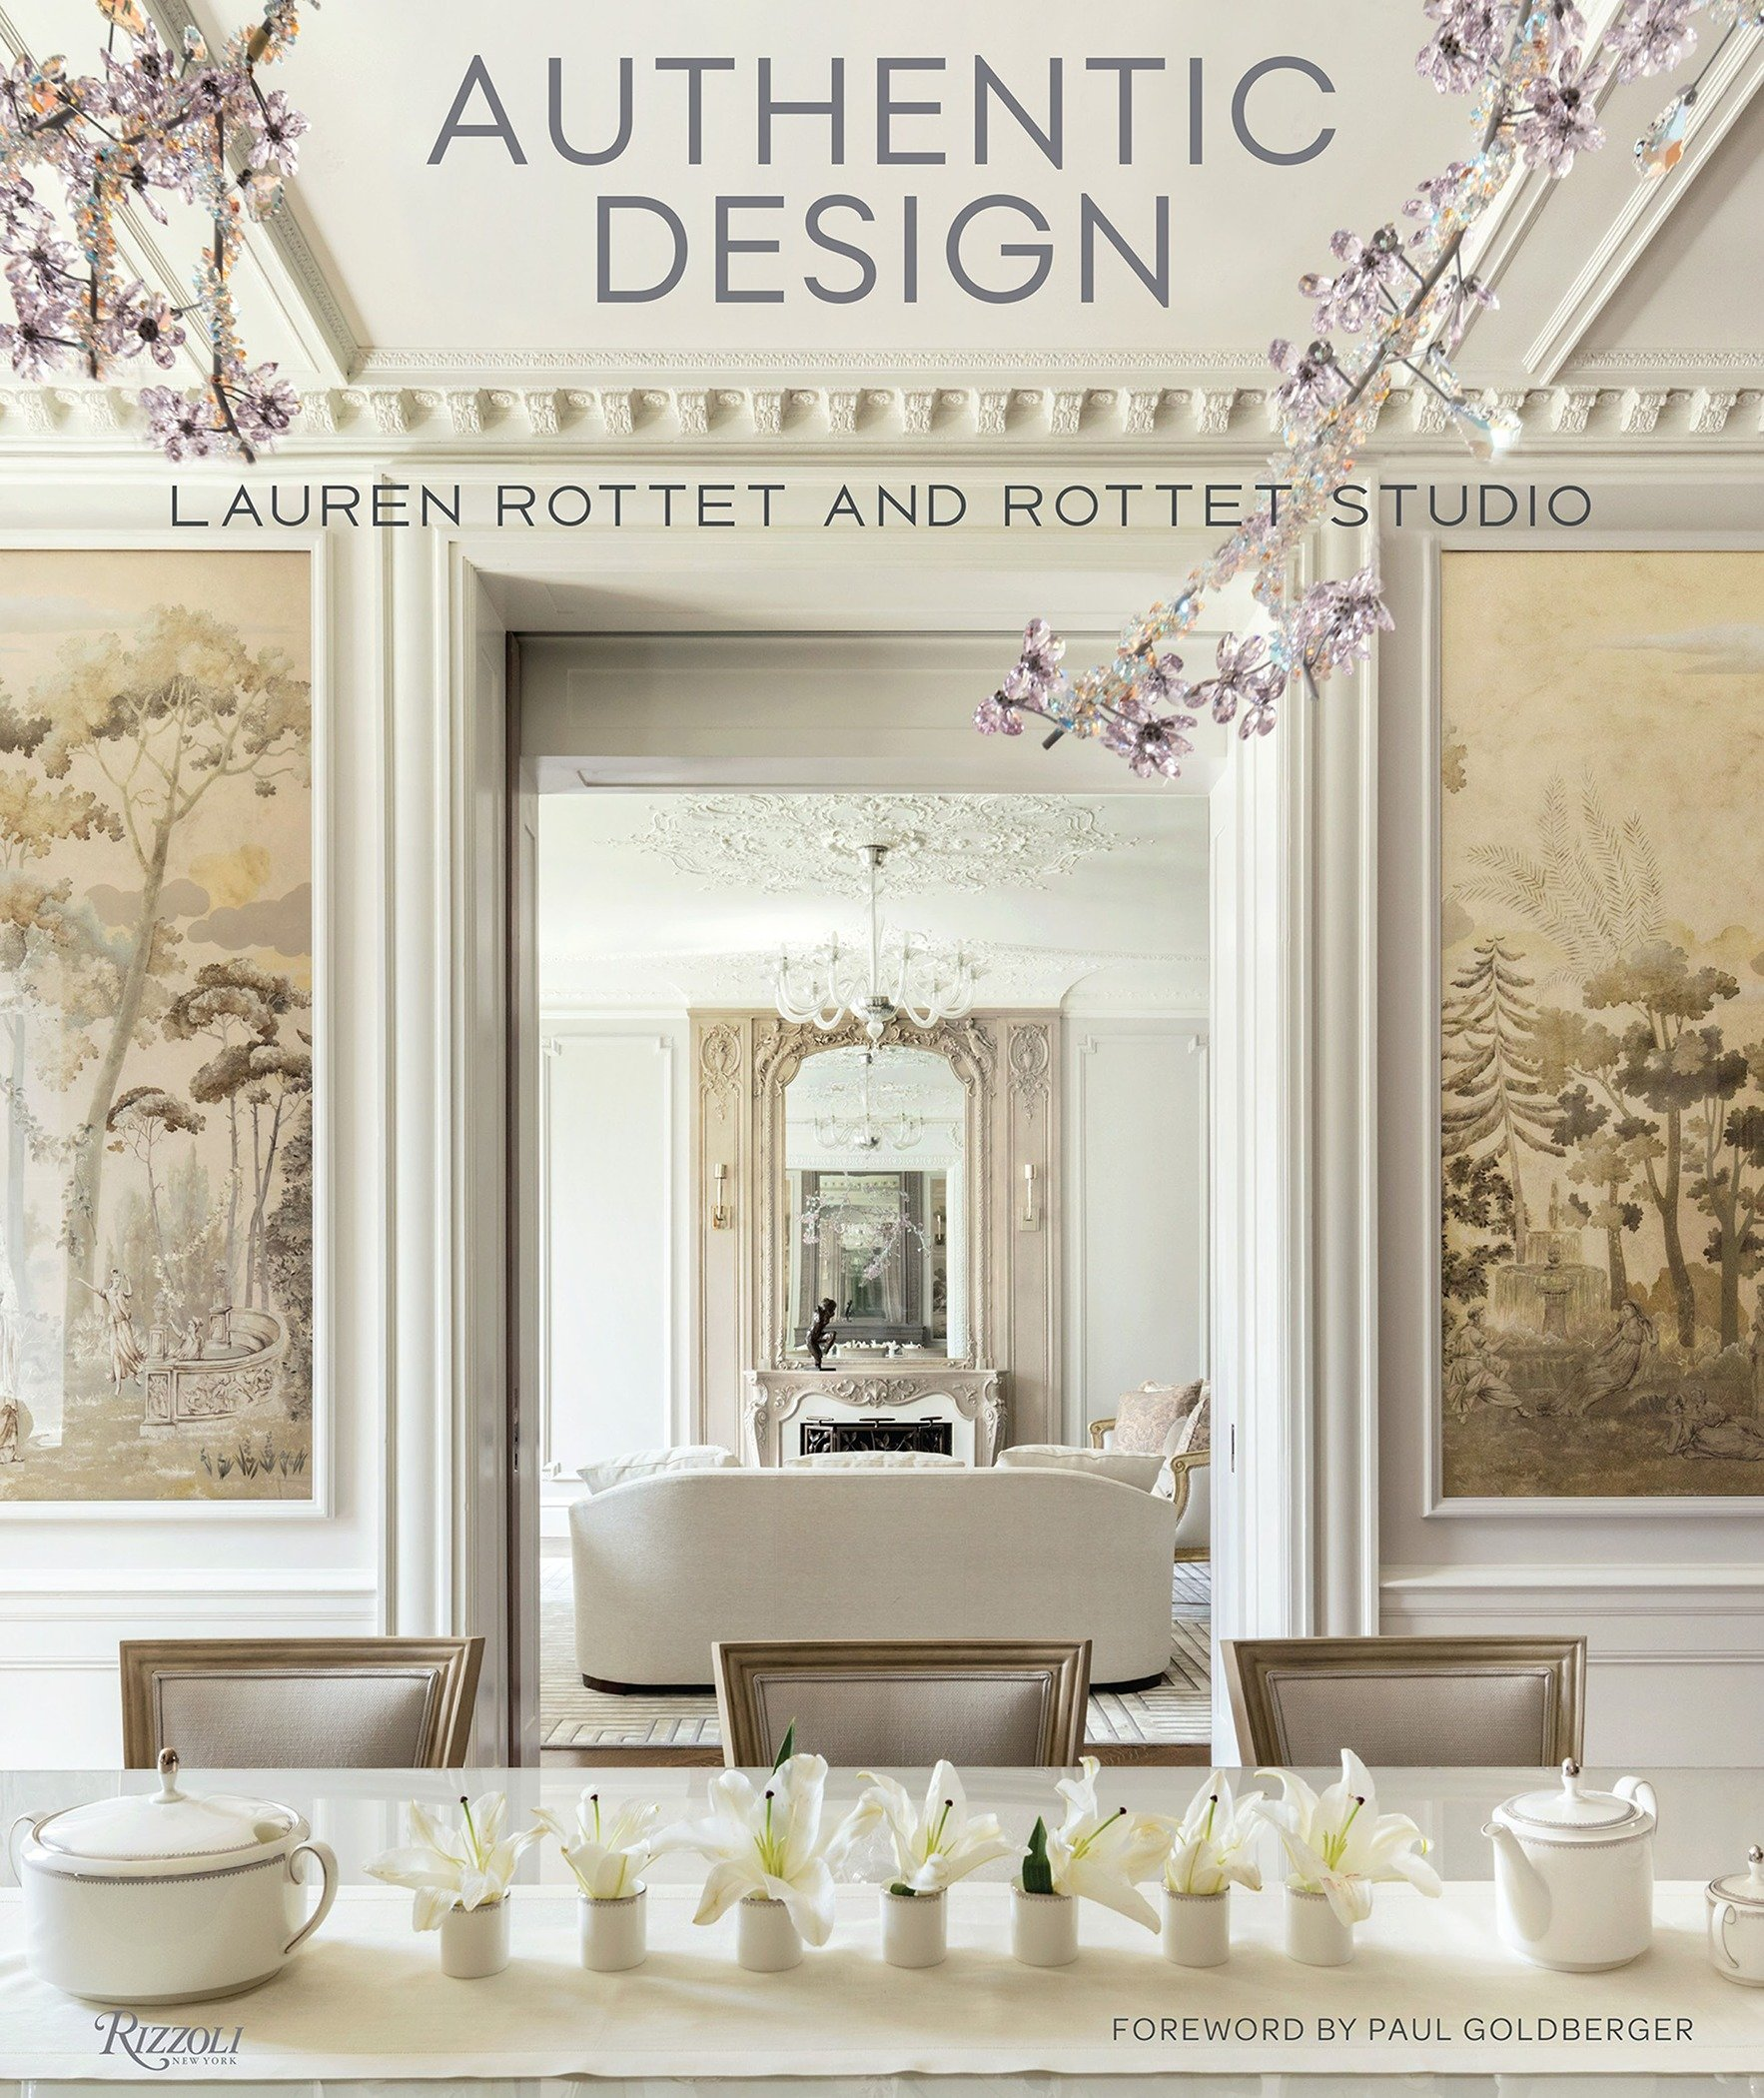 Authentic Design: Lauren Rottet and Rottet Studio